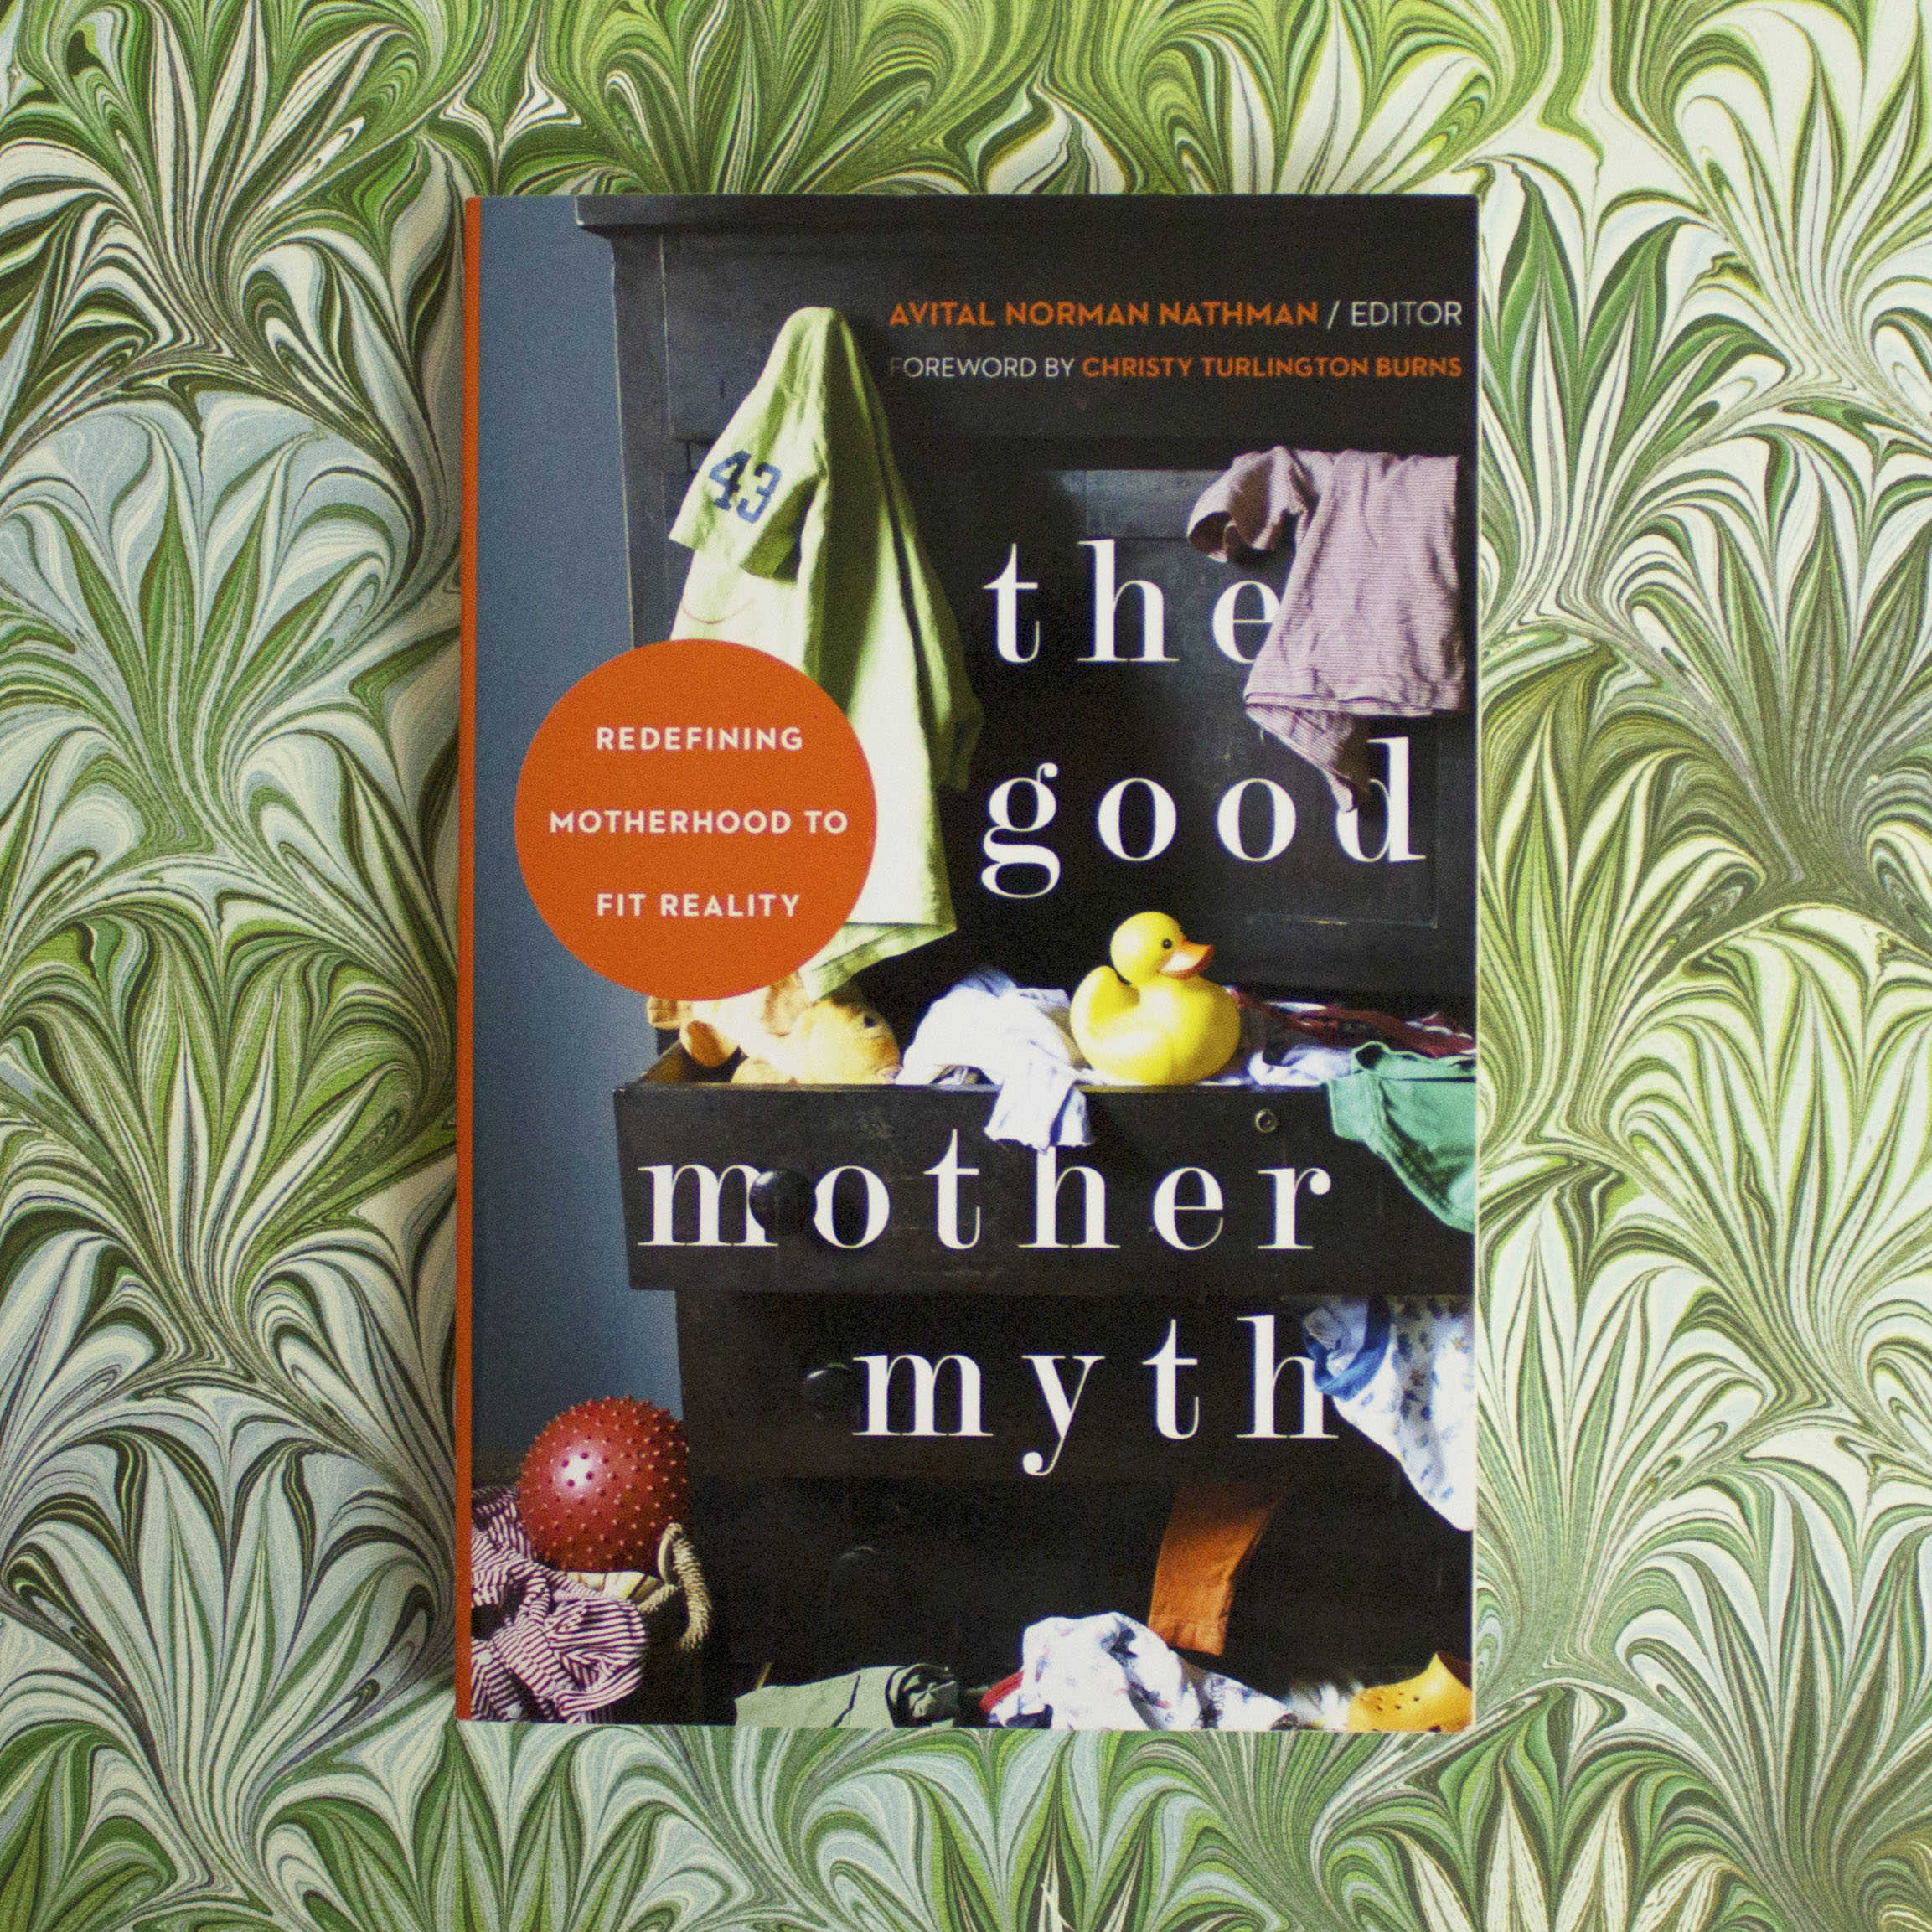 the good mother myth cover